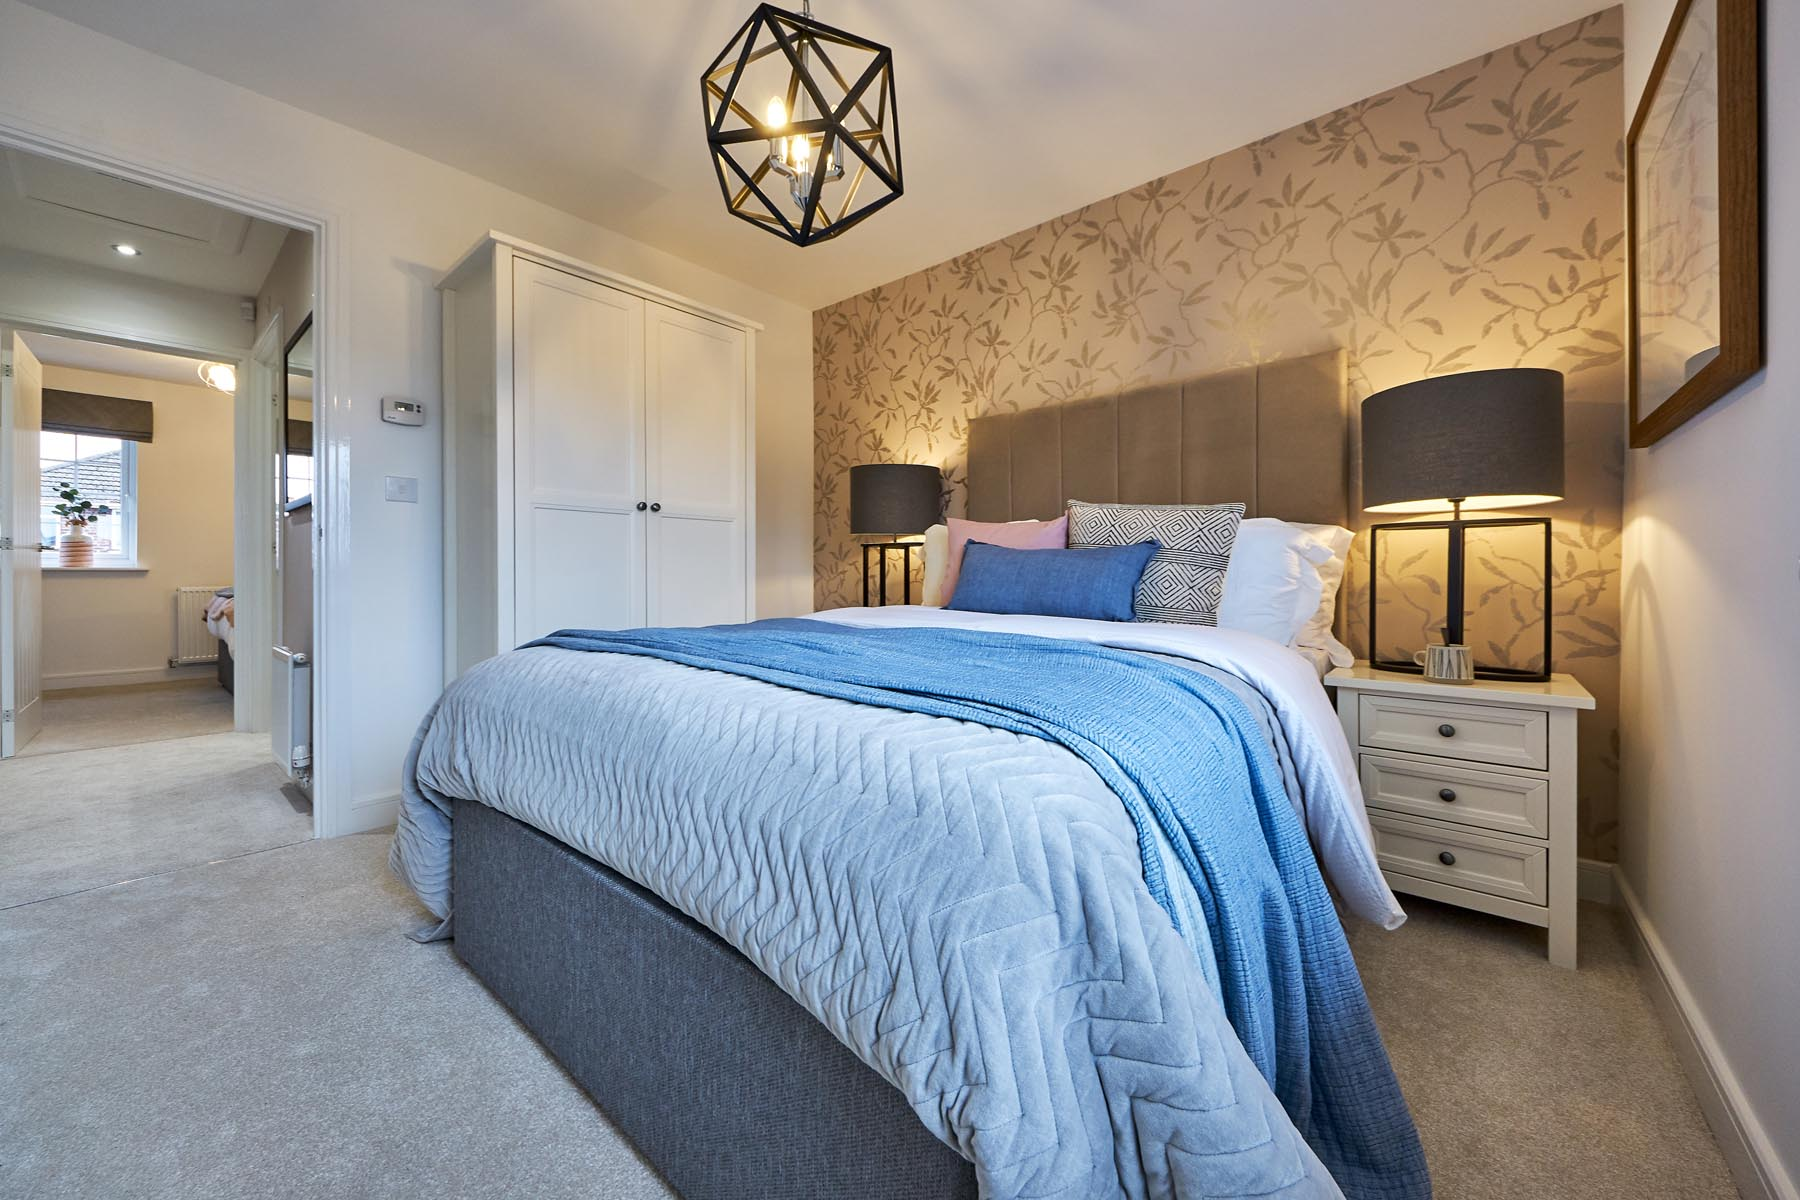 Woodland Edge - Canford - Master bedroom2